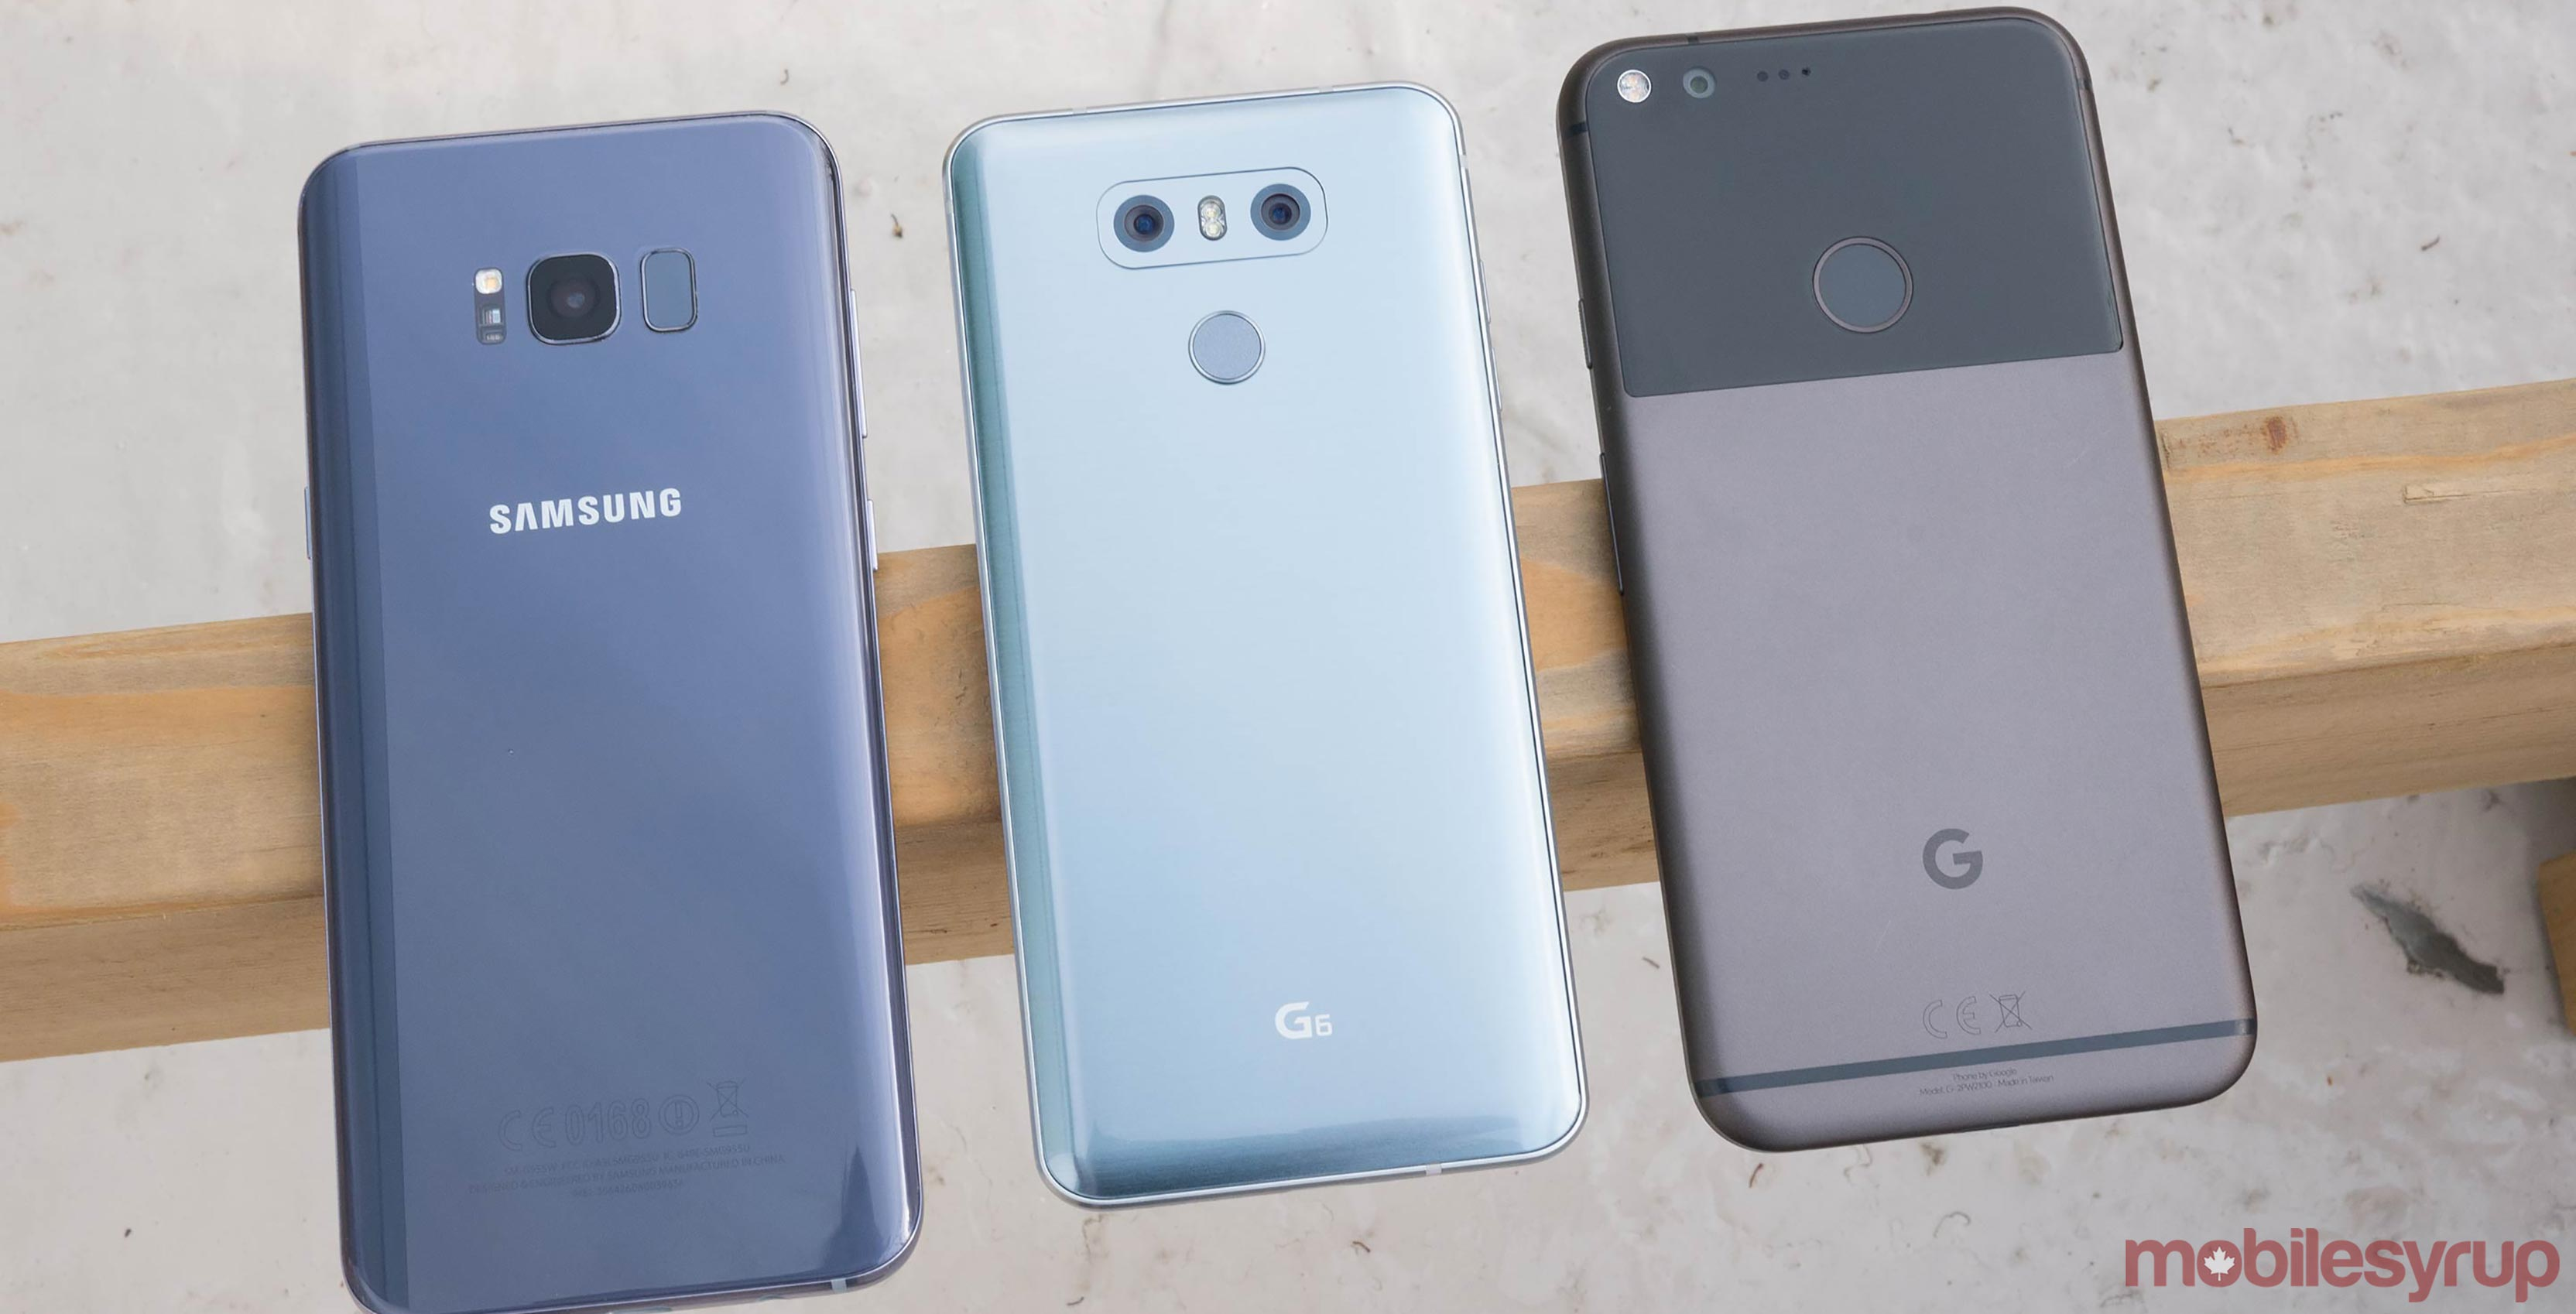 The Galaxy S8, LG G6 and Google Pixel XL all next to one another